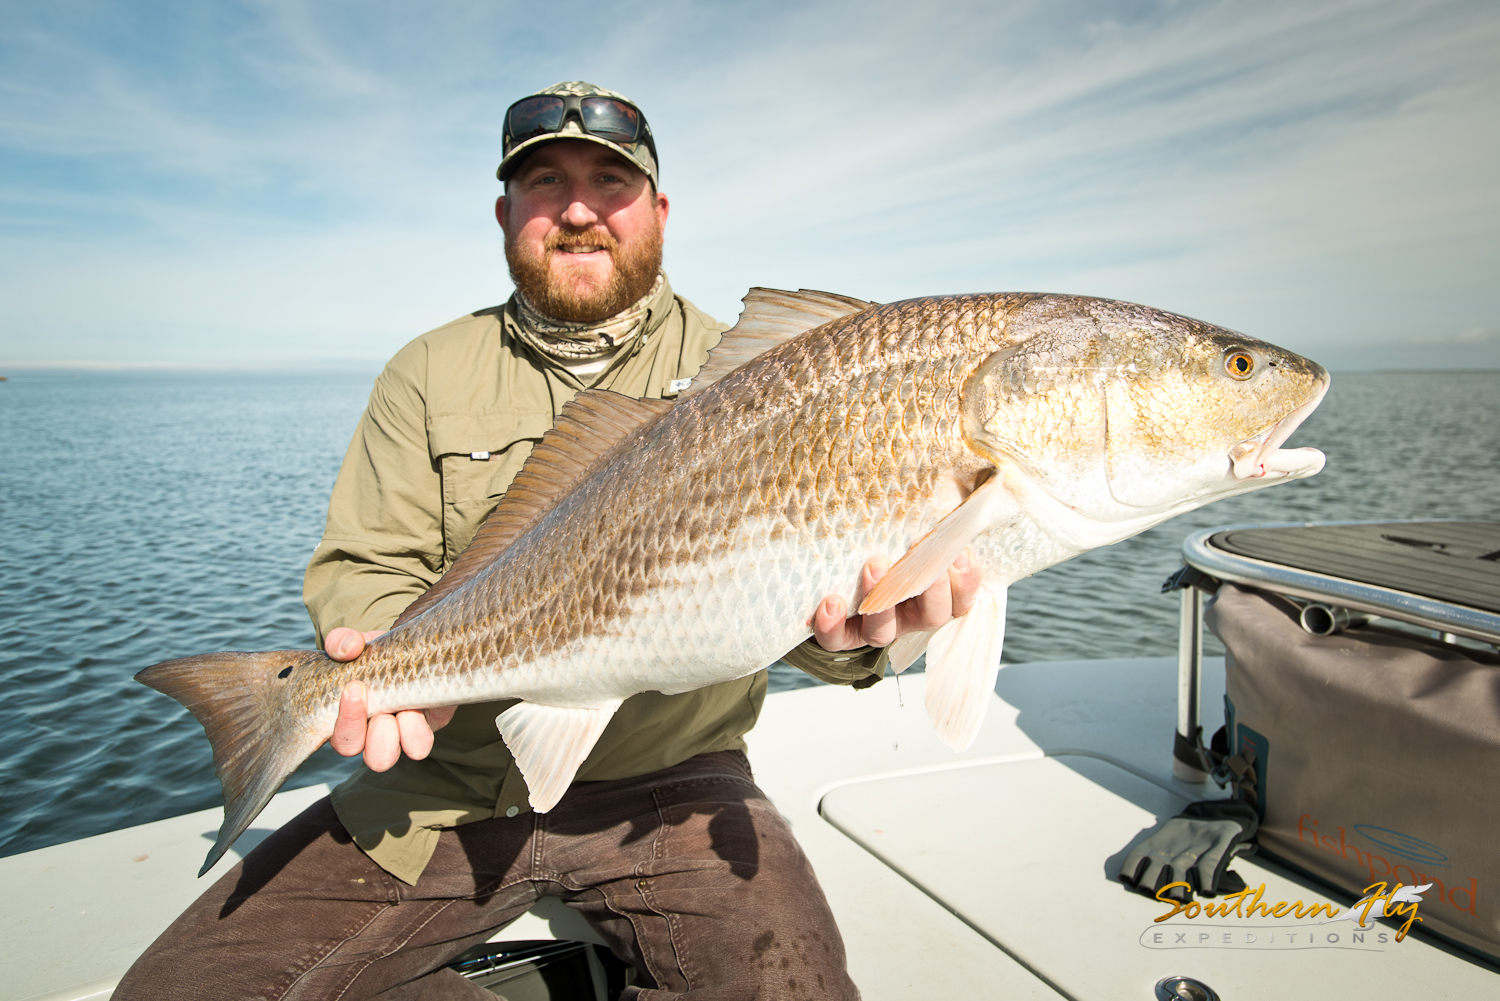 Best fishing guides in Louisiana - Southern Fly Expeditions of New Orleans